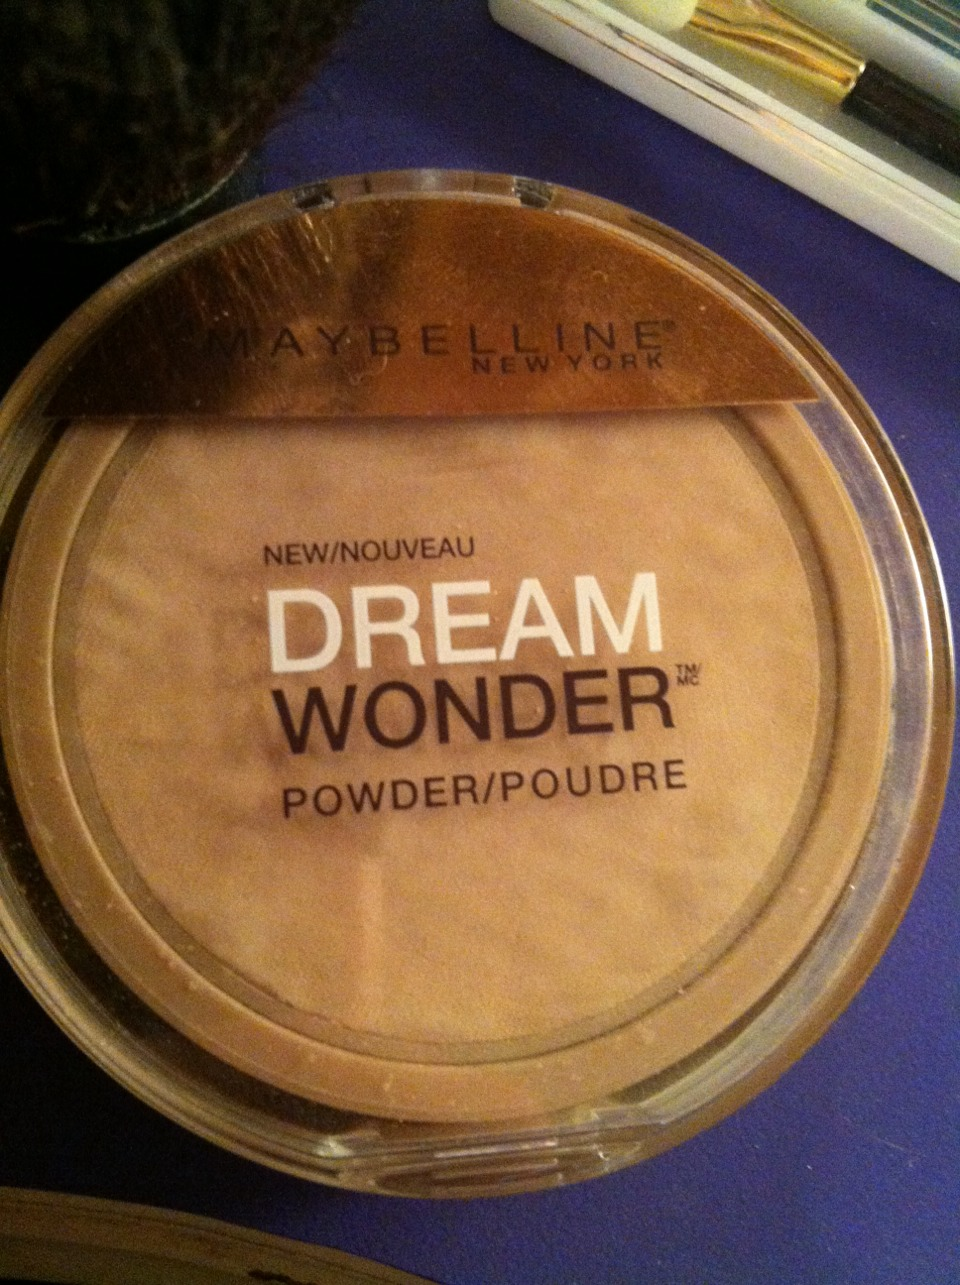 Continue the past steps until invisible the pat on powder to make it seem more natural and blended.